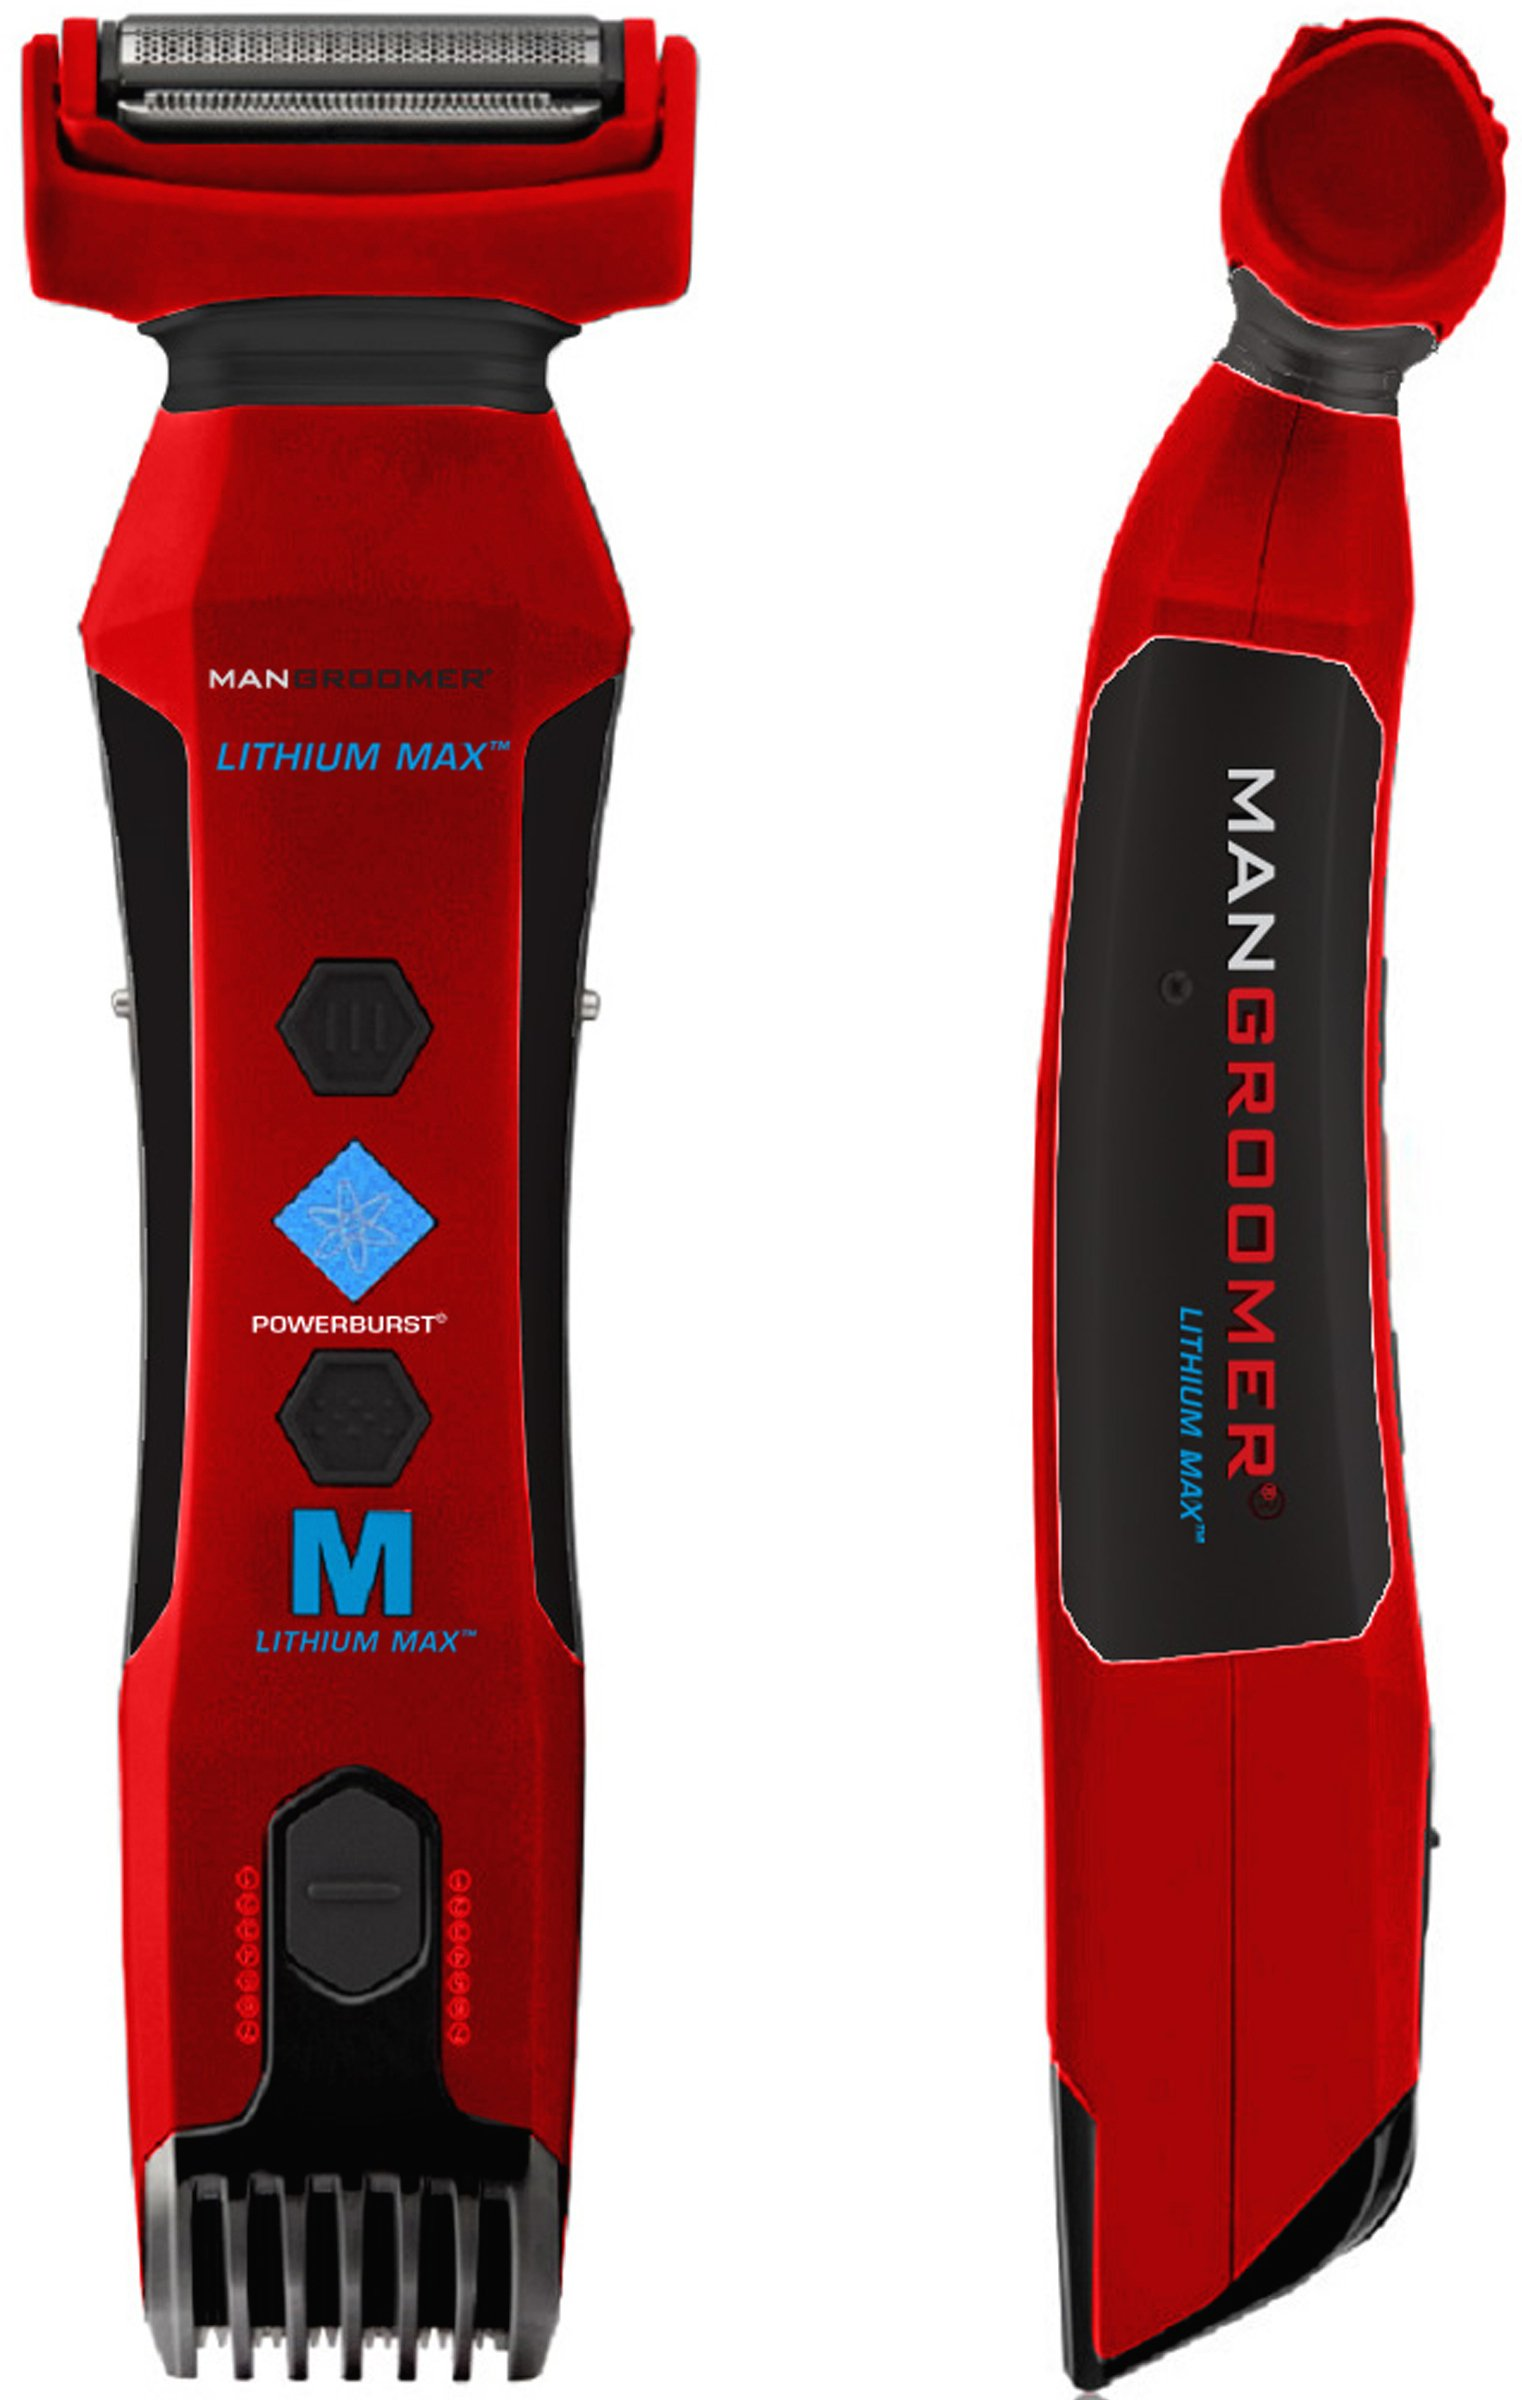 MANGROOMER Lithium Max Body Groomer and Body Trimmer with Power Burst by MANGROOMER